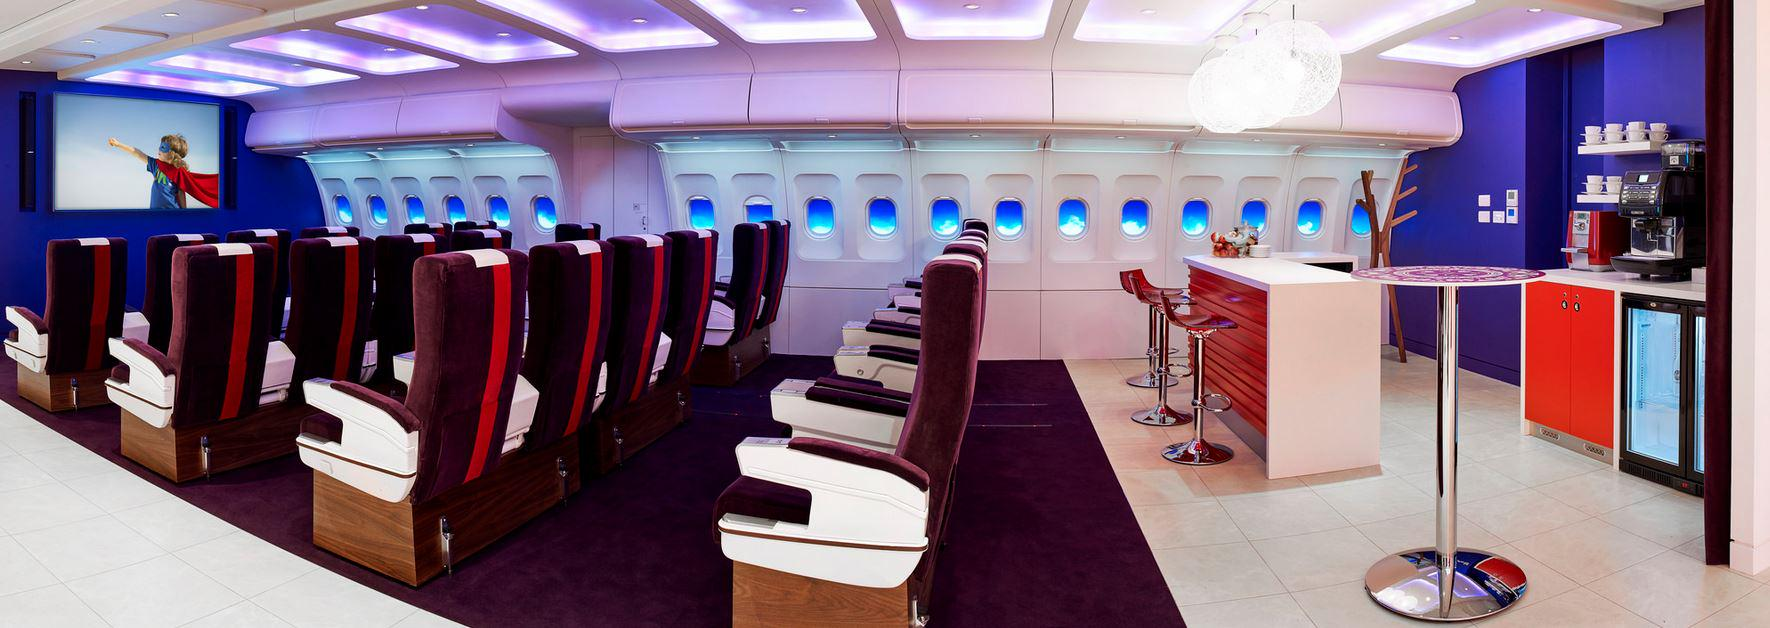 We do things differently at @Virgin. Check out our @VirginMoney & @VirginAtlantic lounges: http://t.co/QB1z7aYl33 http://t.co/WL4e1zSgFc